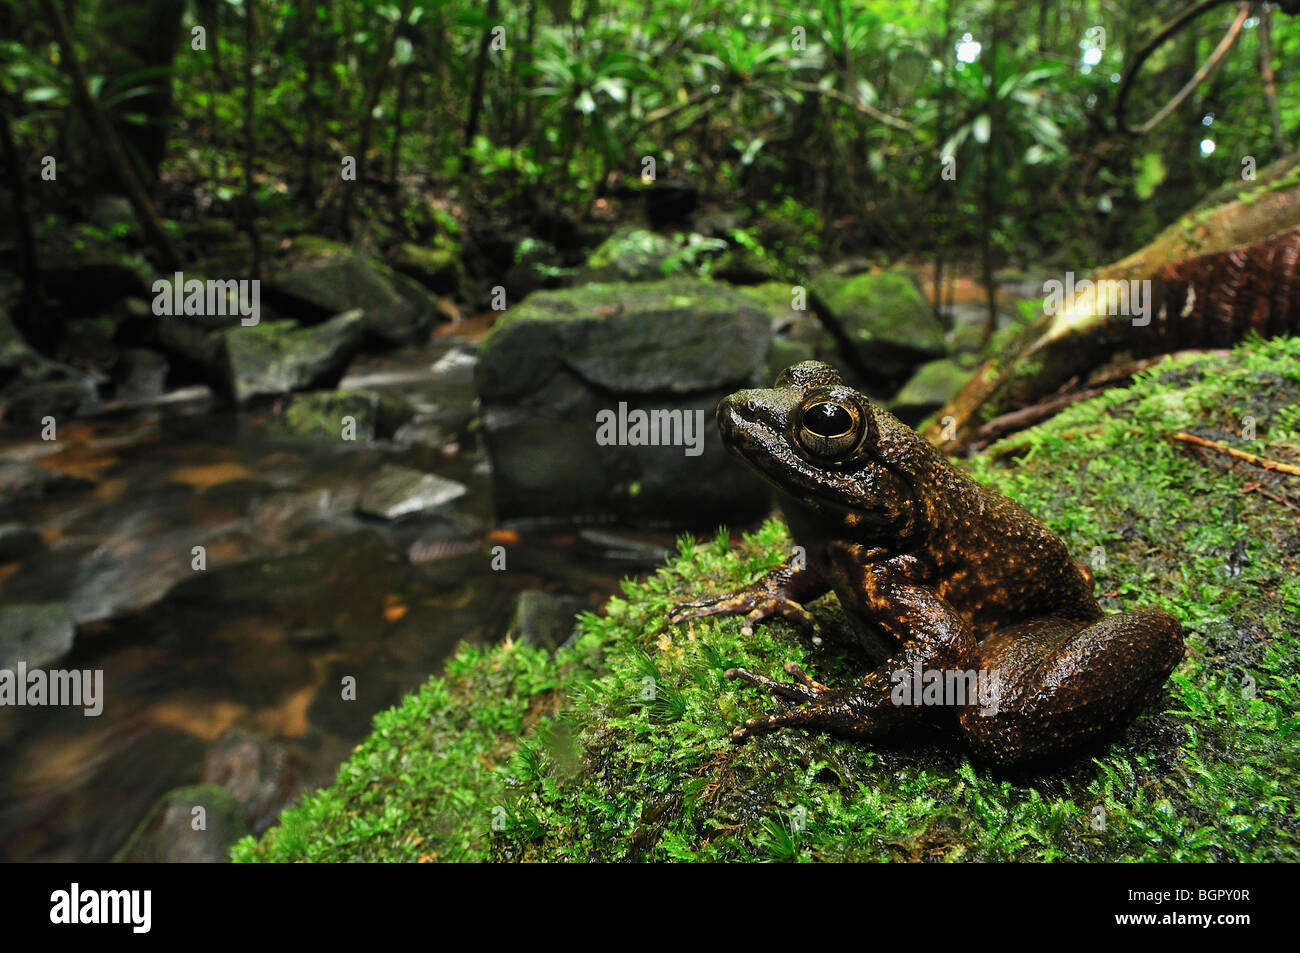 Grandidier's Stream Frog (Mantidactylus grandidieri), adult at stream, Masoala National Park, Madagascar - Stock Image